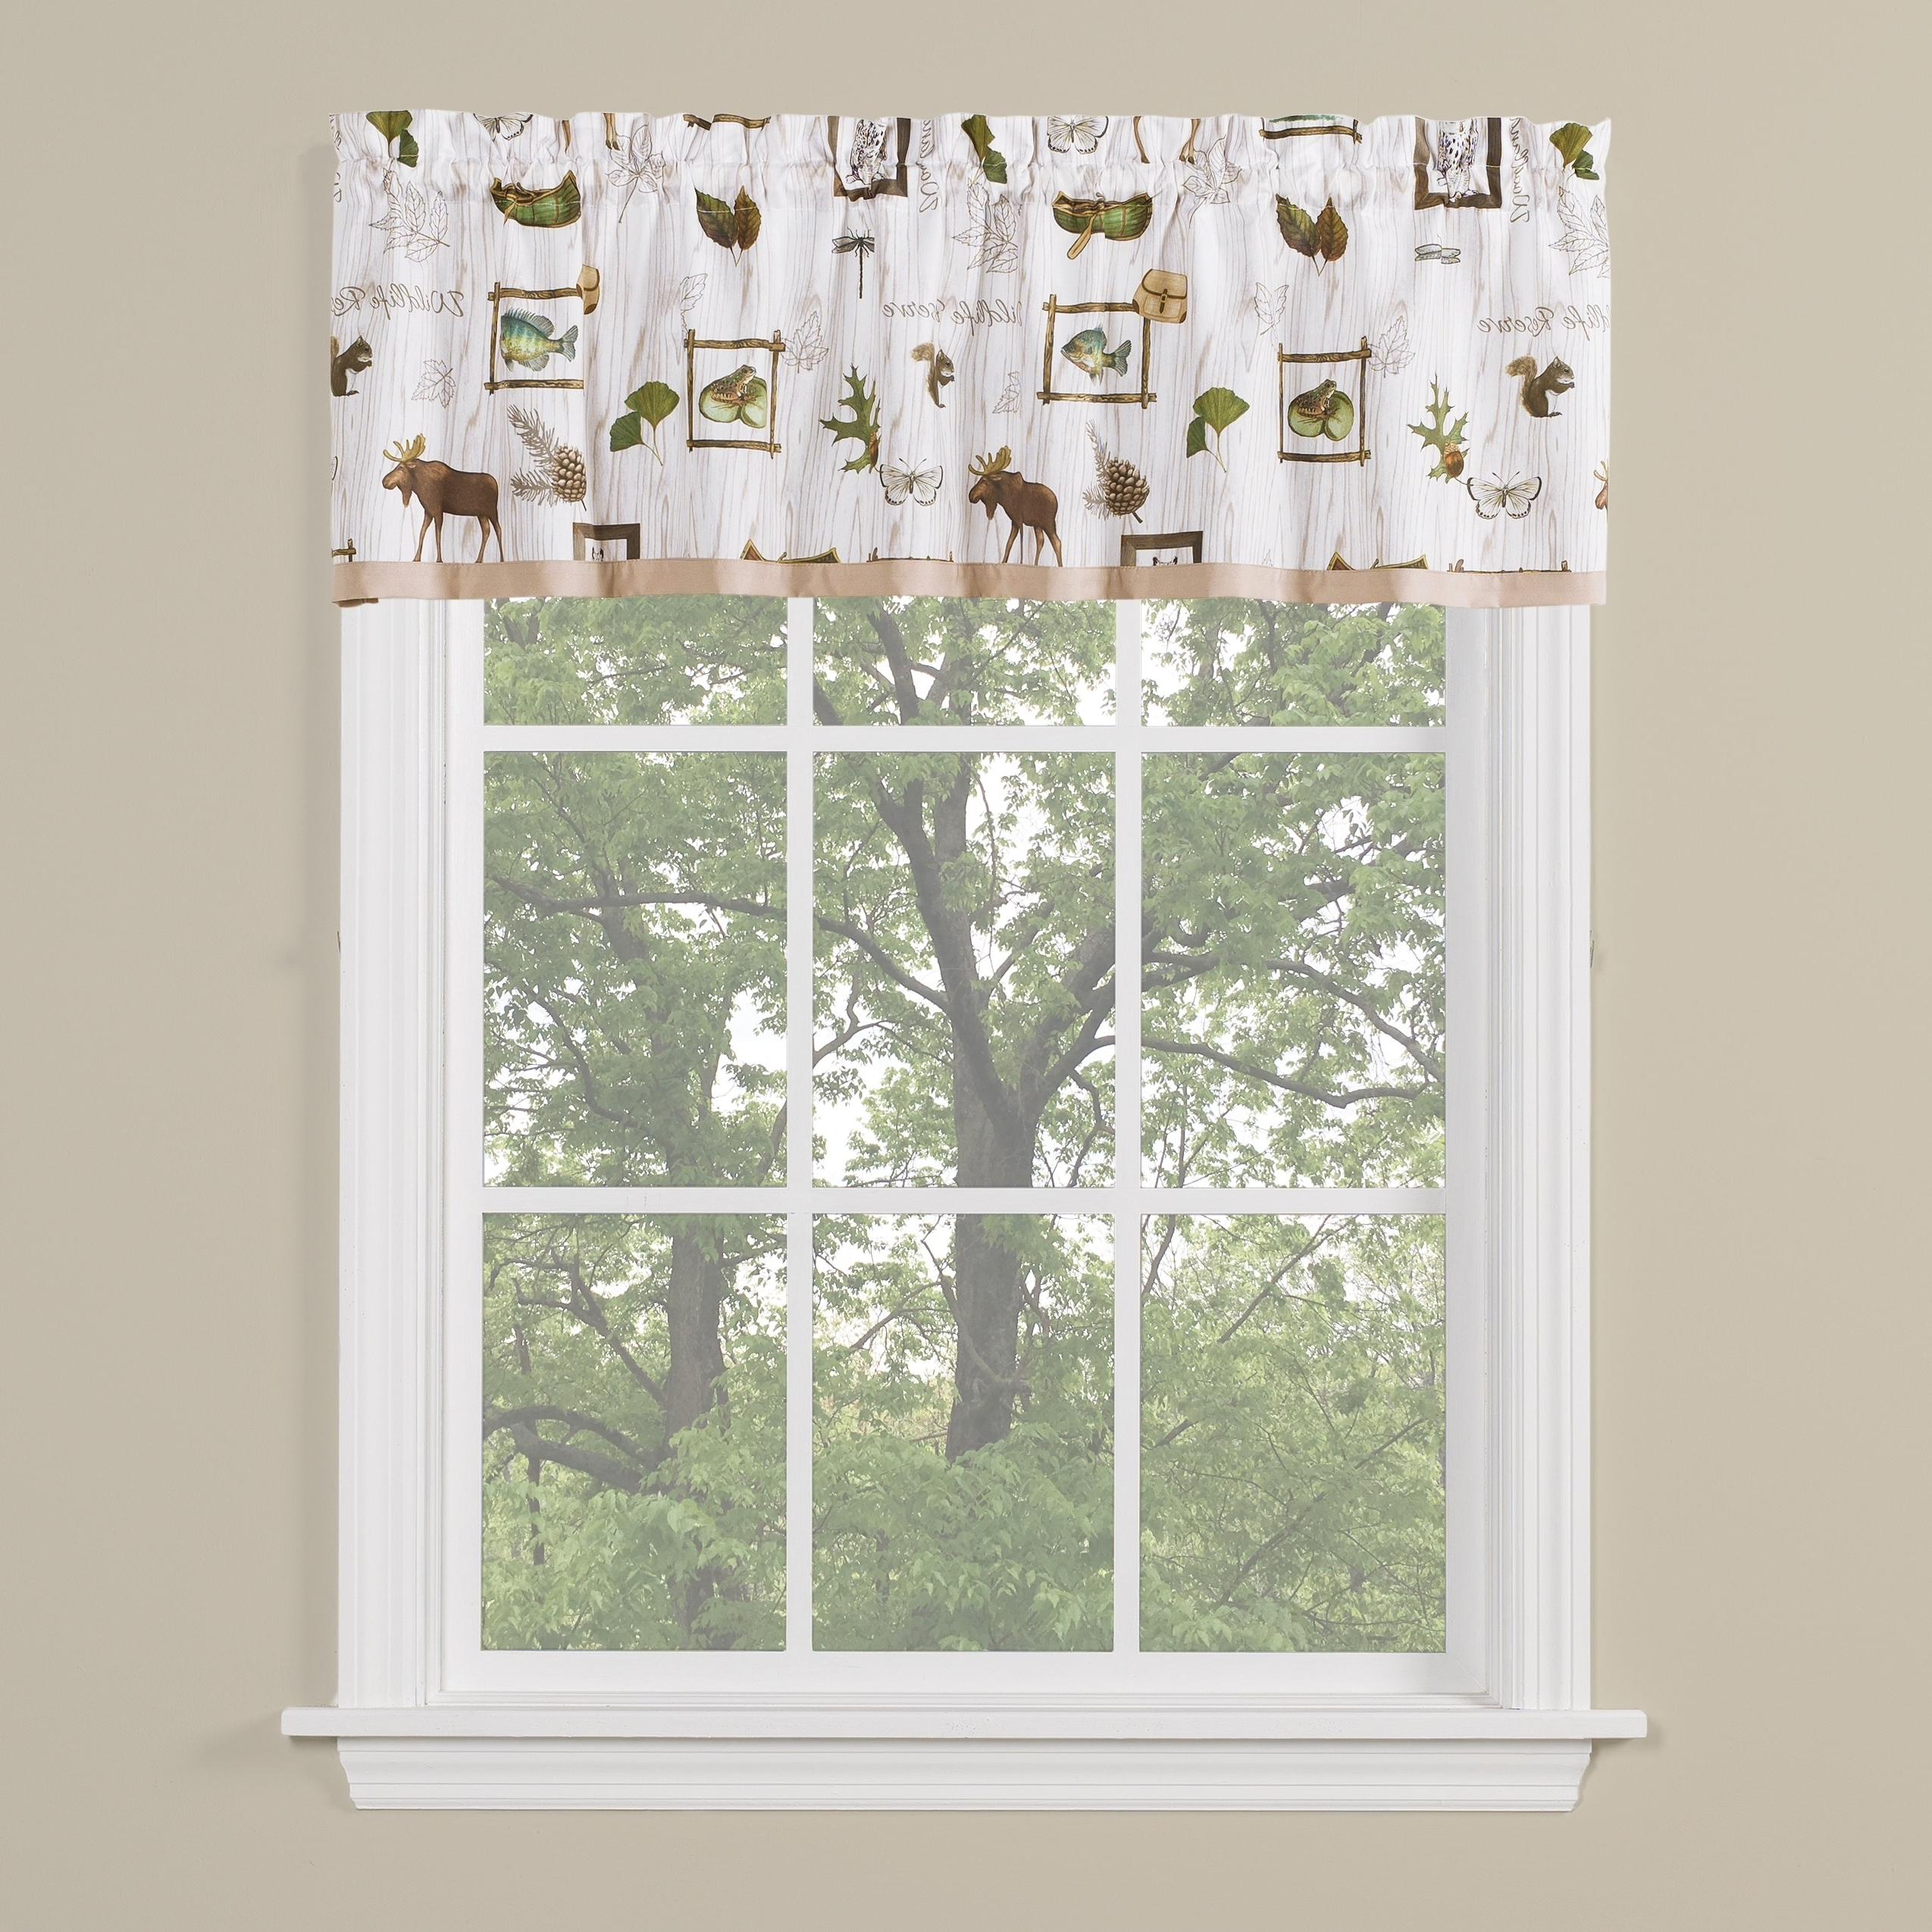 Forest Valance And Tier Pair Curtains Intended For Most Popular Saturday Knight Ltd Forest Glen Window Tier Pair & Valance, Neutral (View 4 of 20)